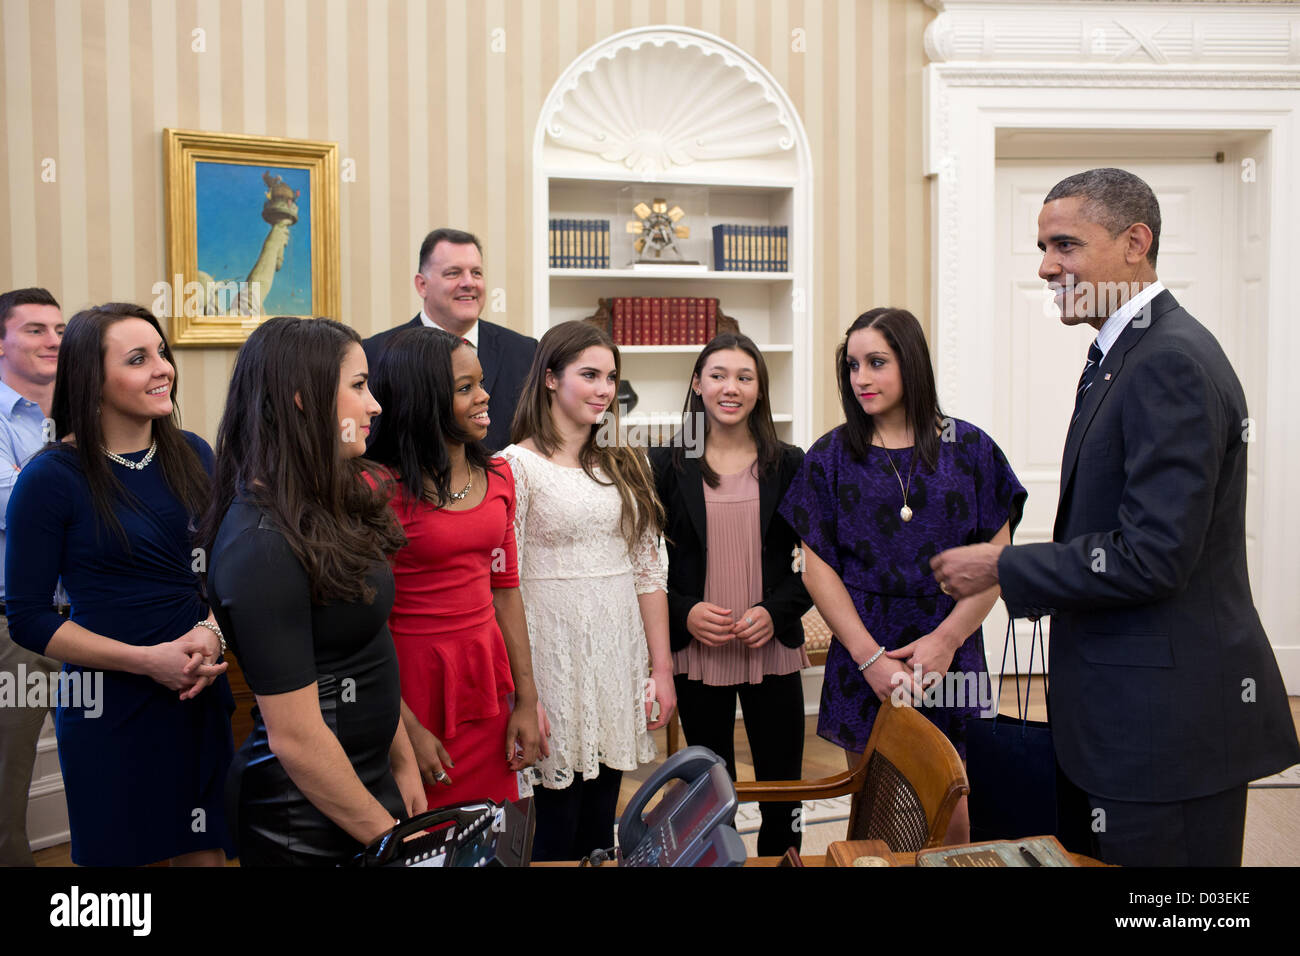 US President Barack Obama talks with members of the 2012 US Olympic gymnastics teams in the Oval Office of the White - Stock Image